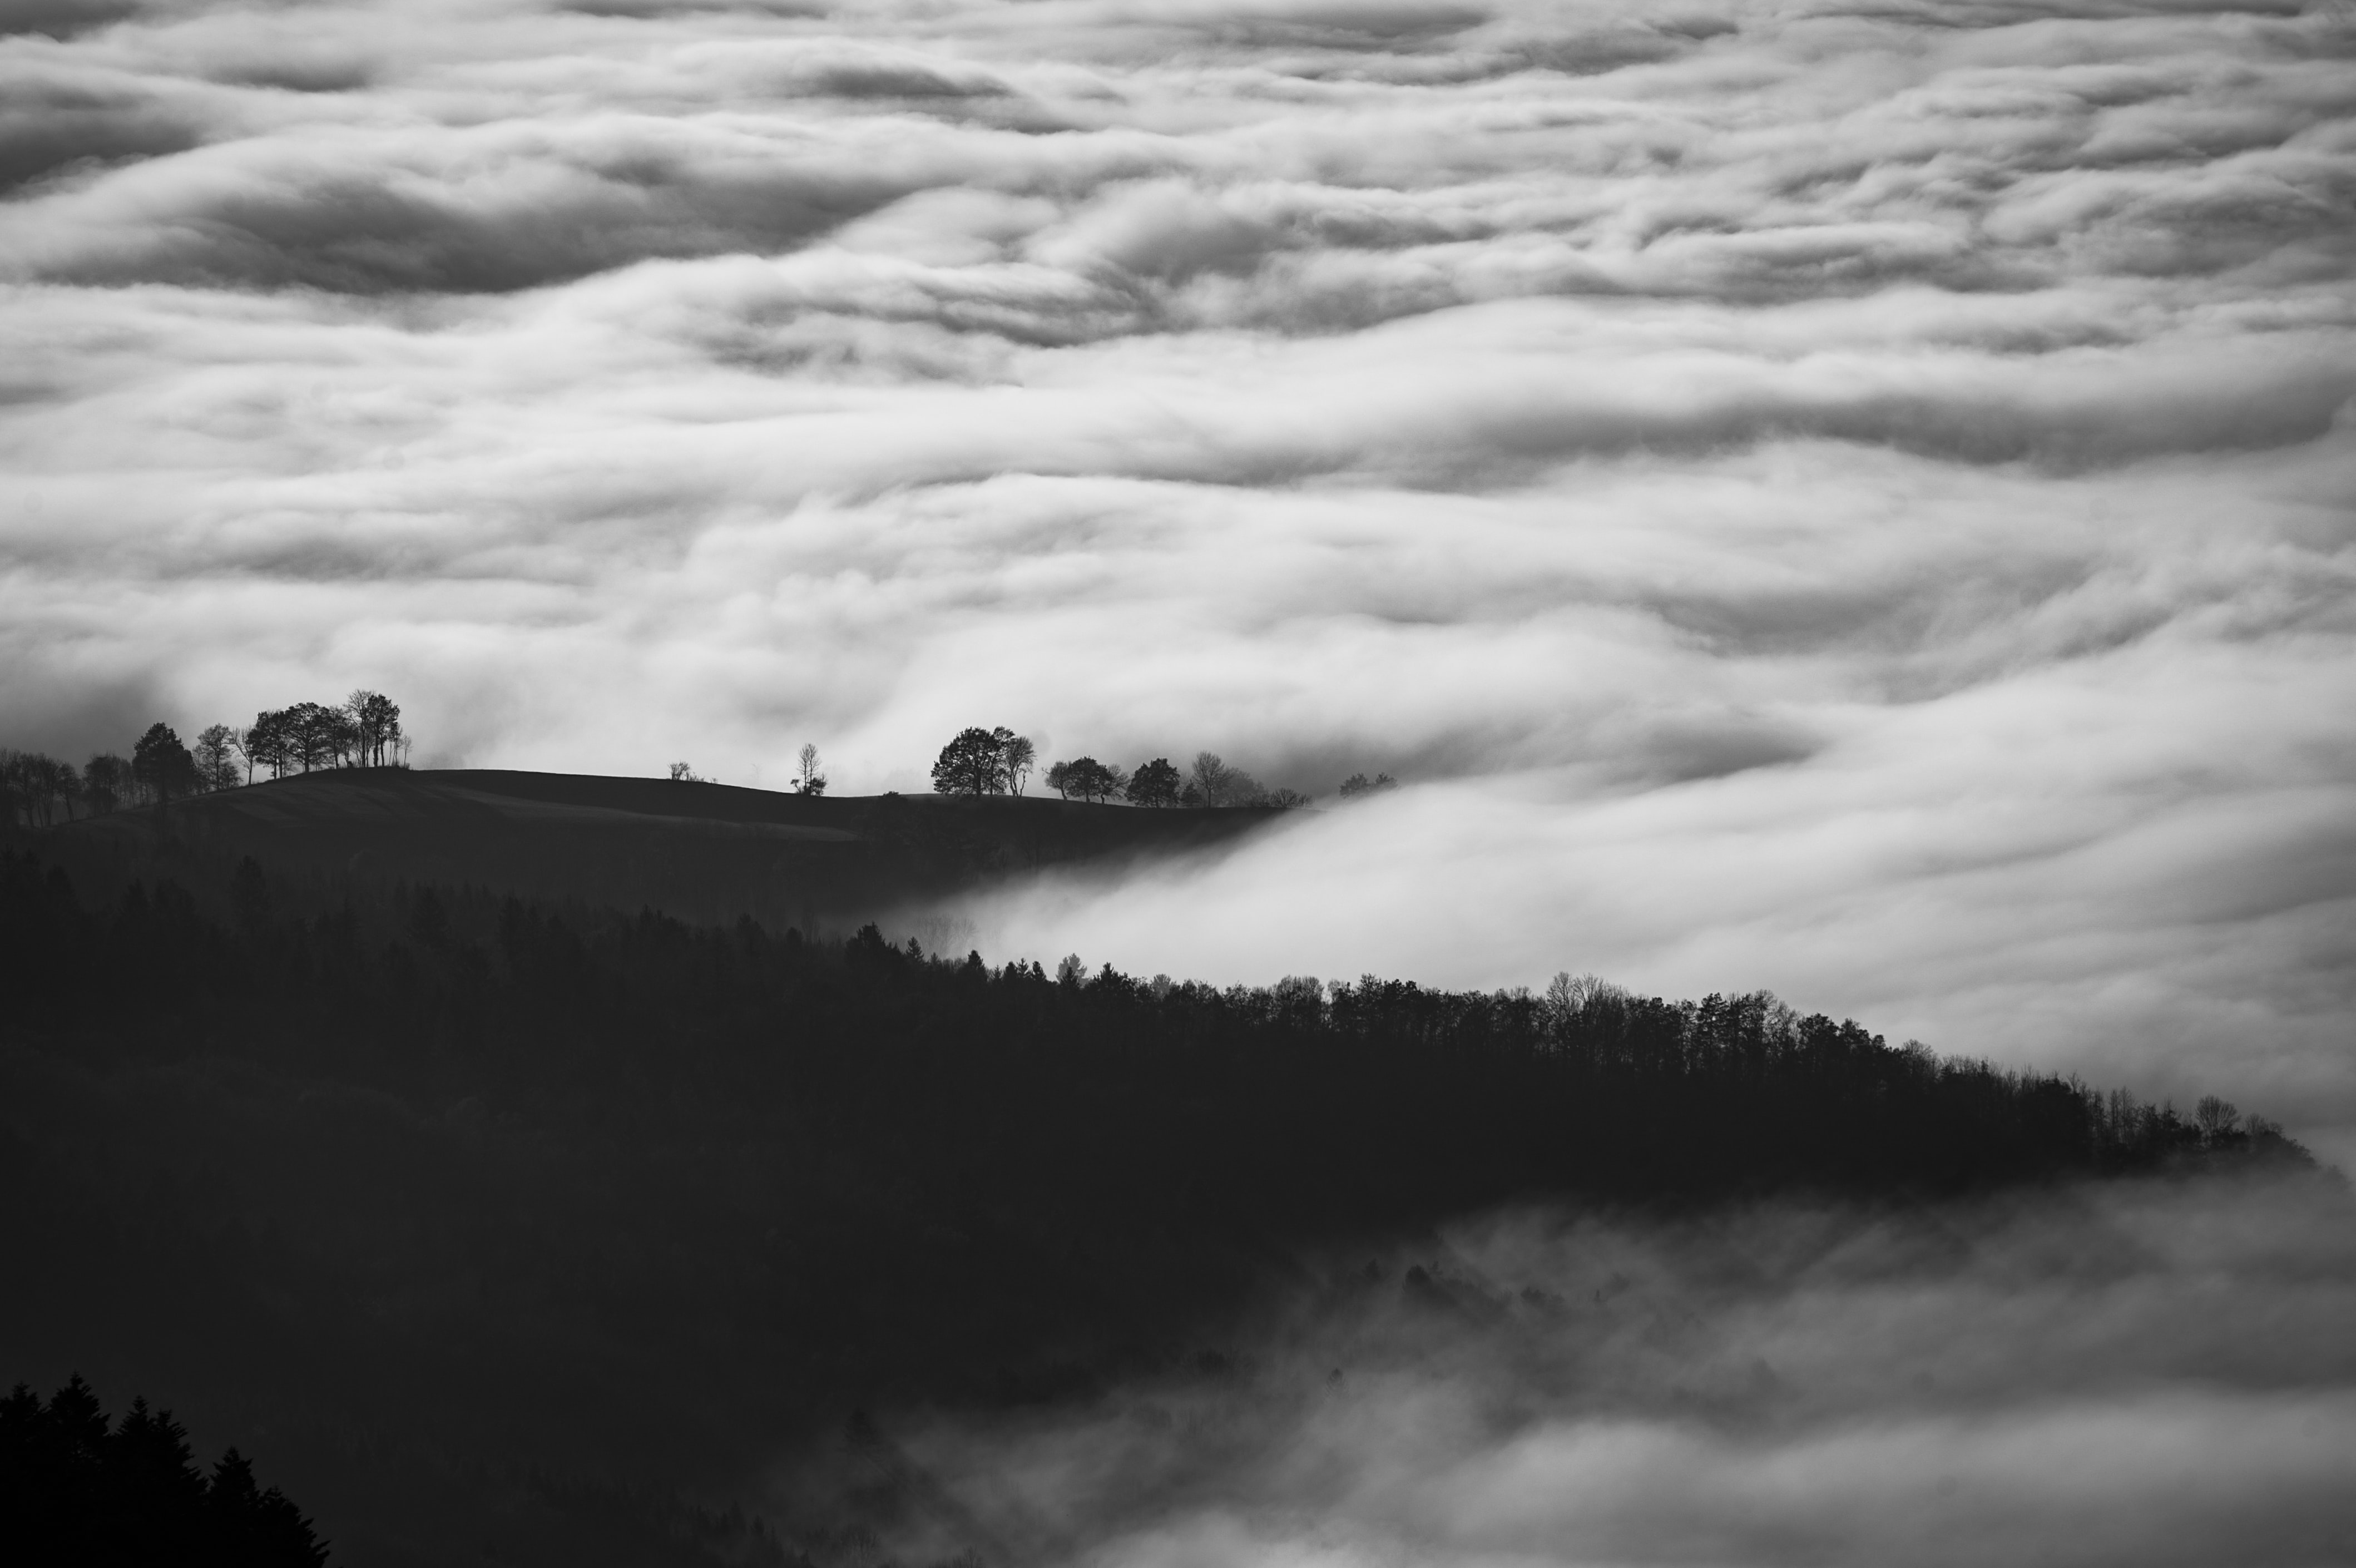 A desaturated shot of clouds enveloping hills in the countryside